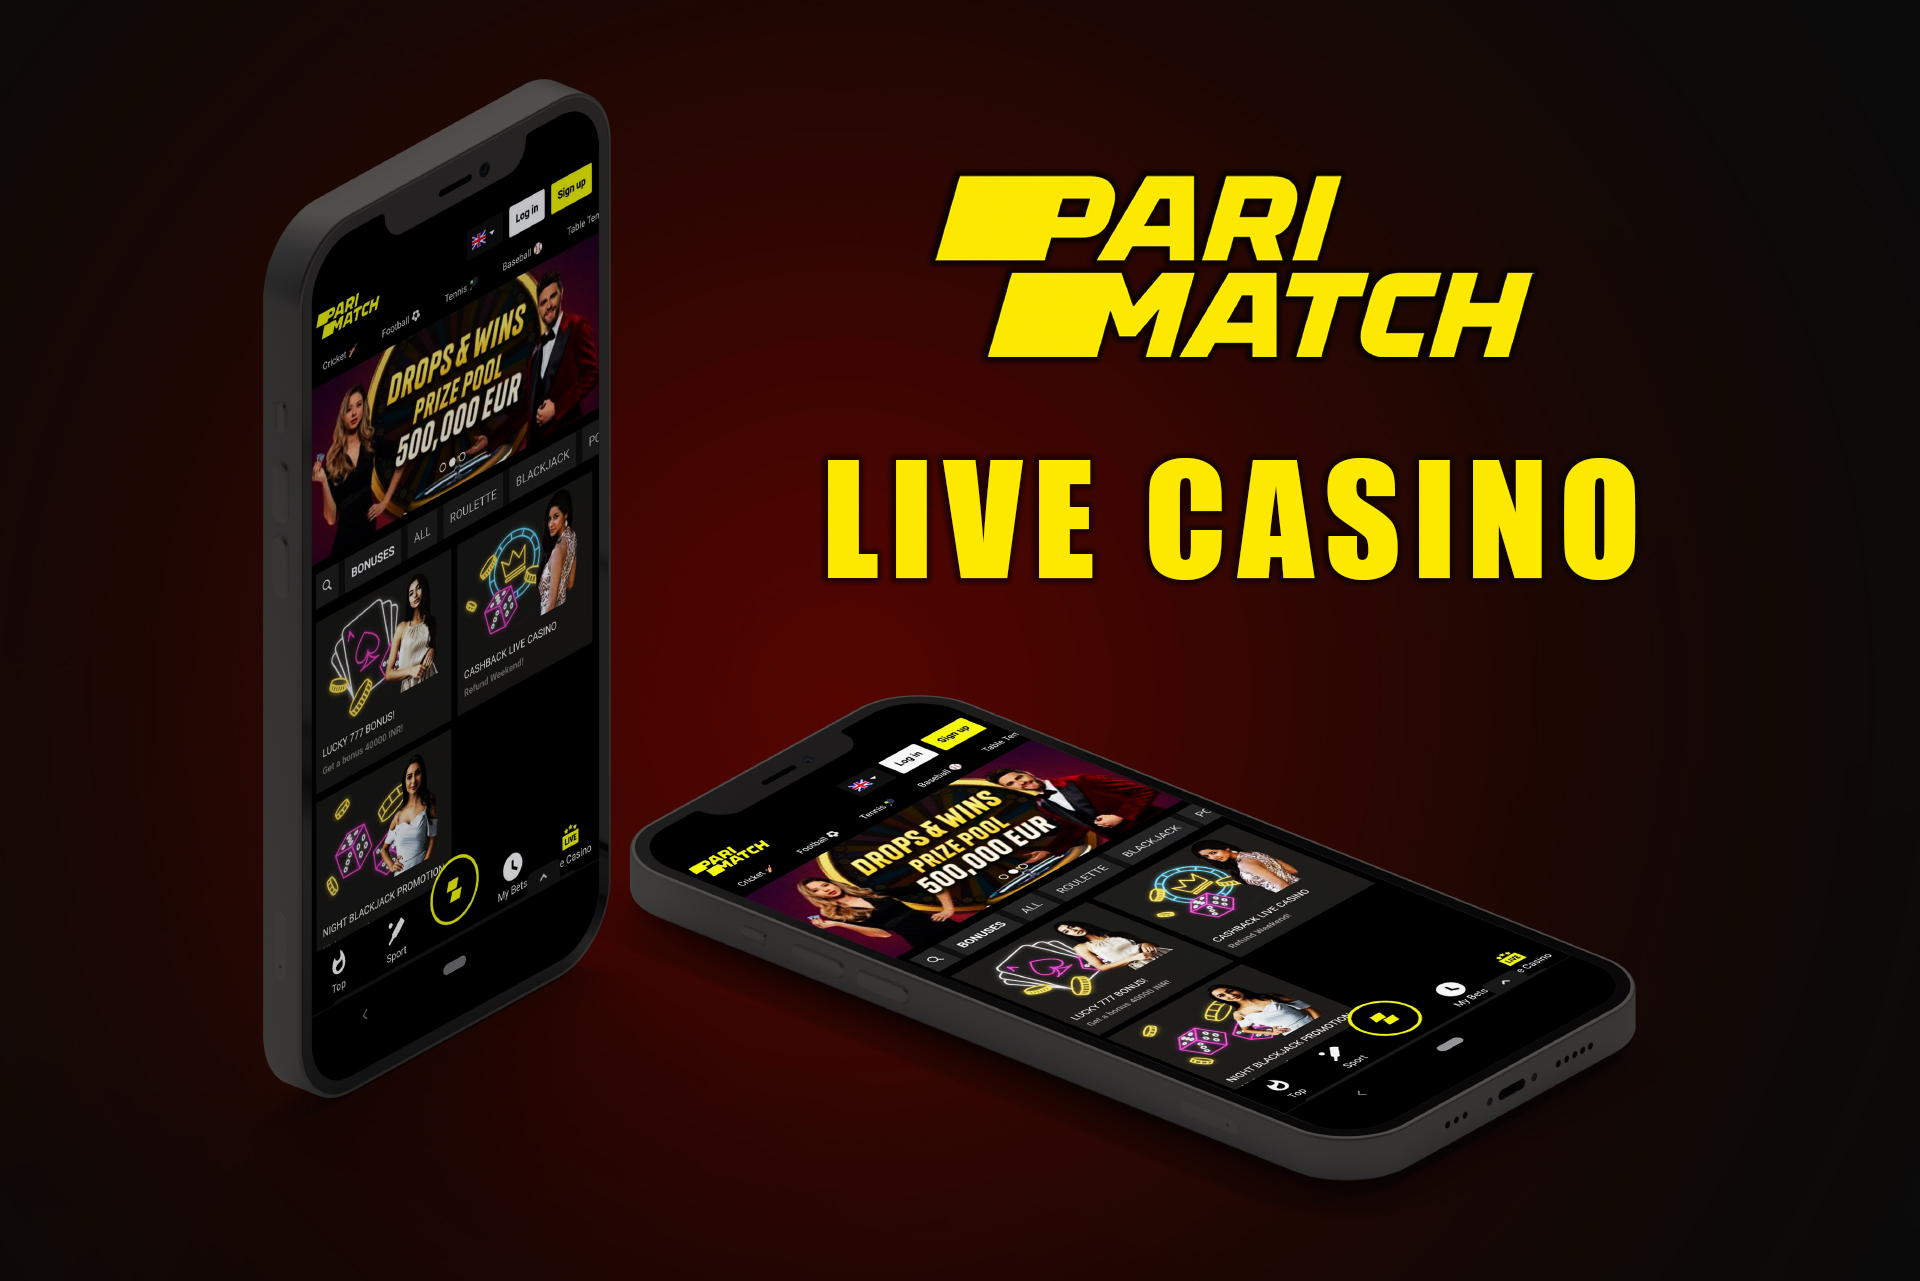 For fans of games with a live dealer, there is the live casino section in the app.